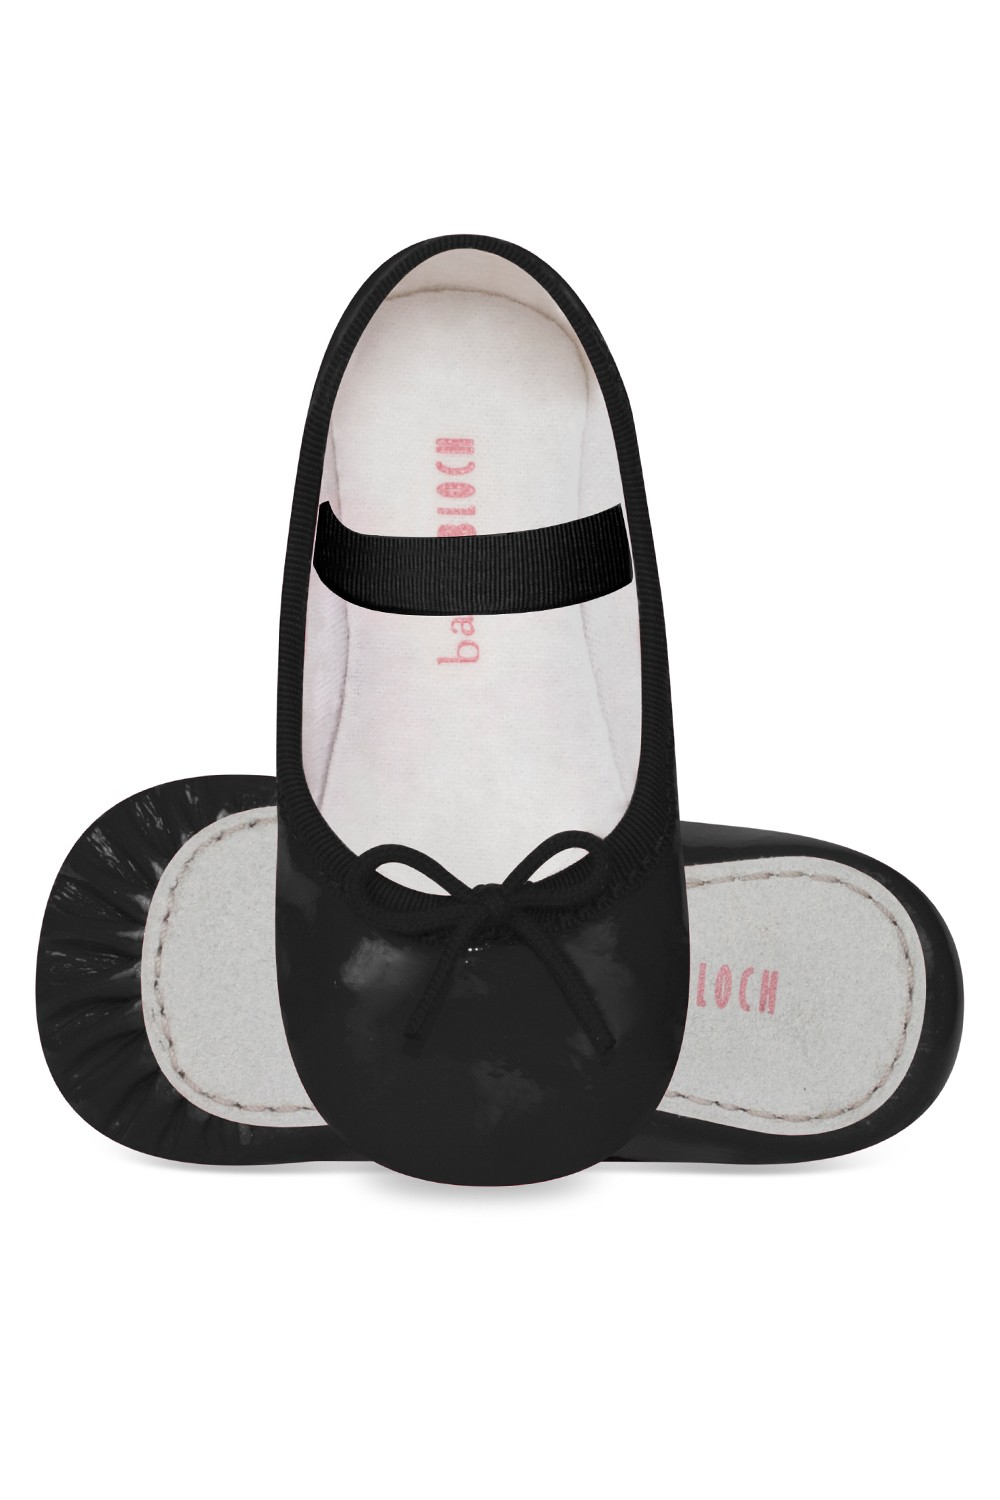 Cha Cha Babies Fashion Shoes